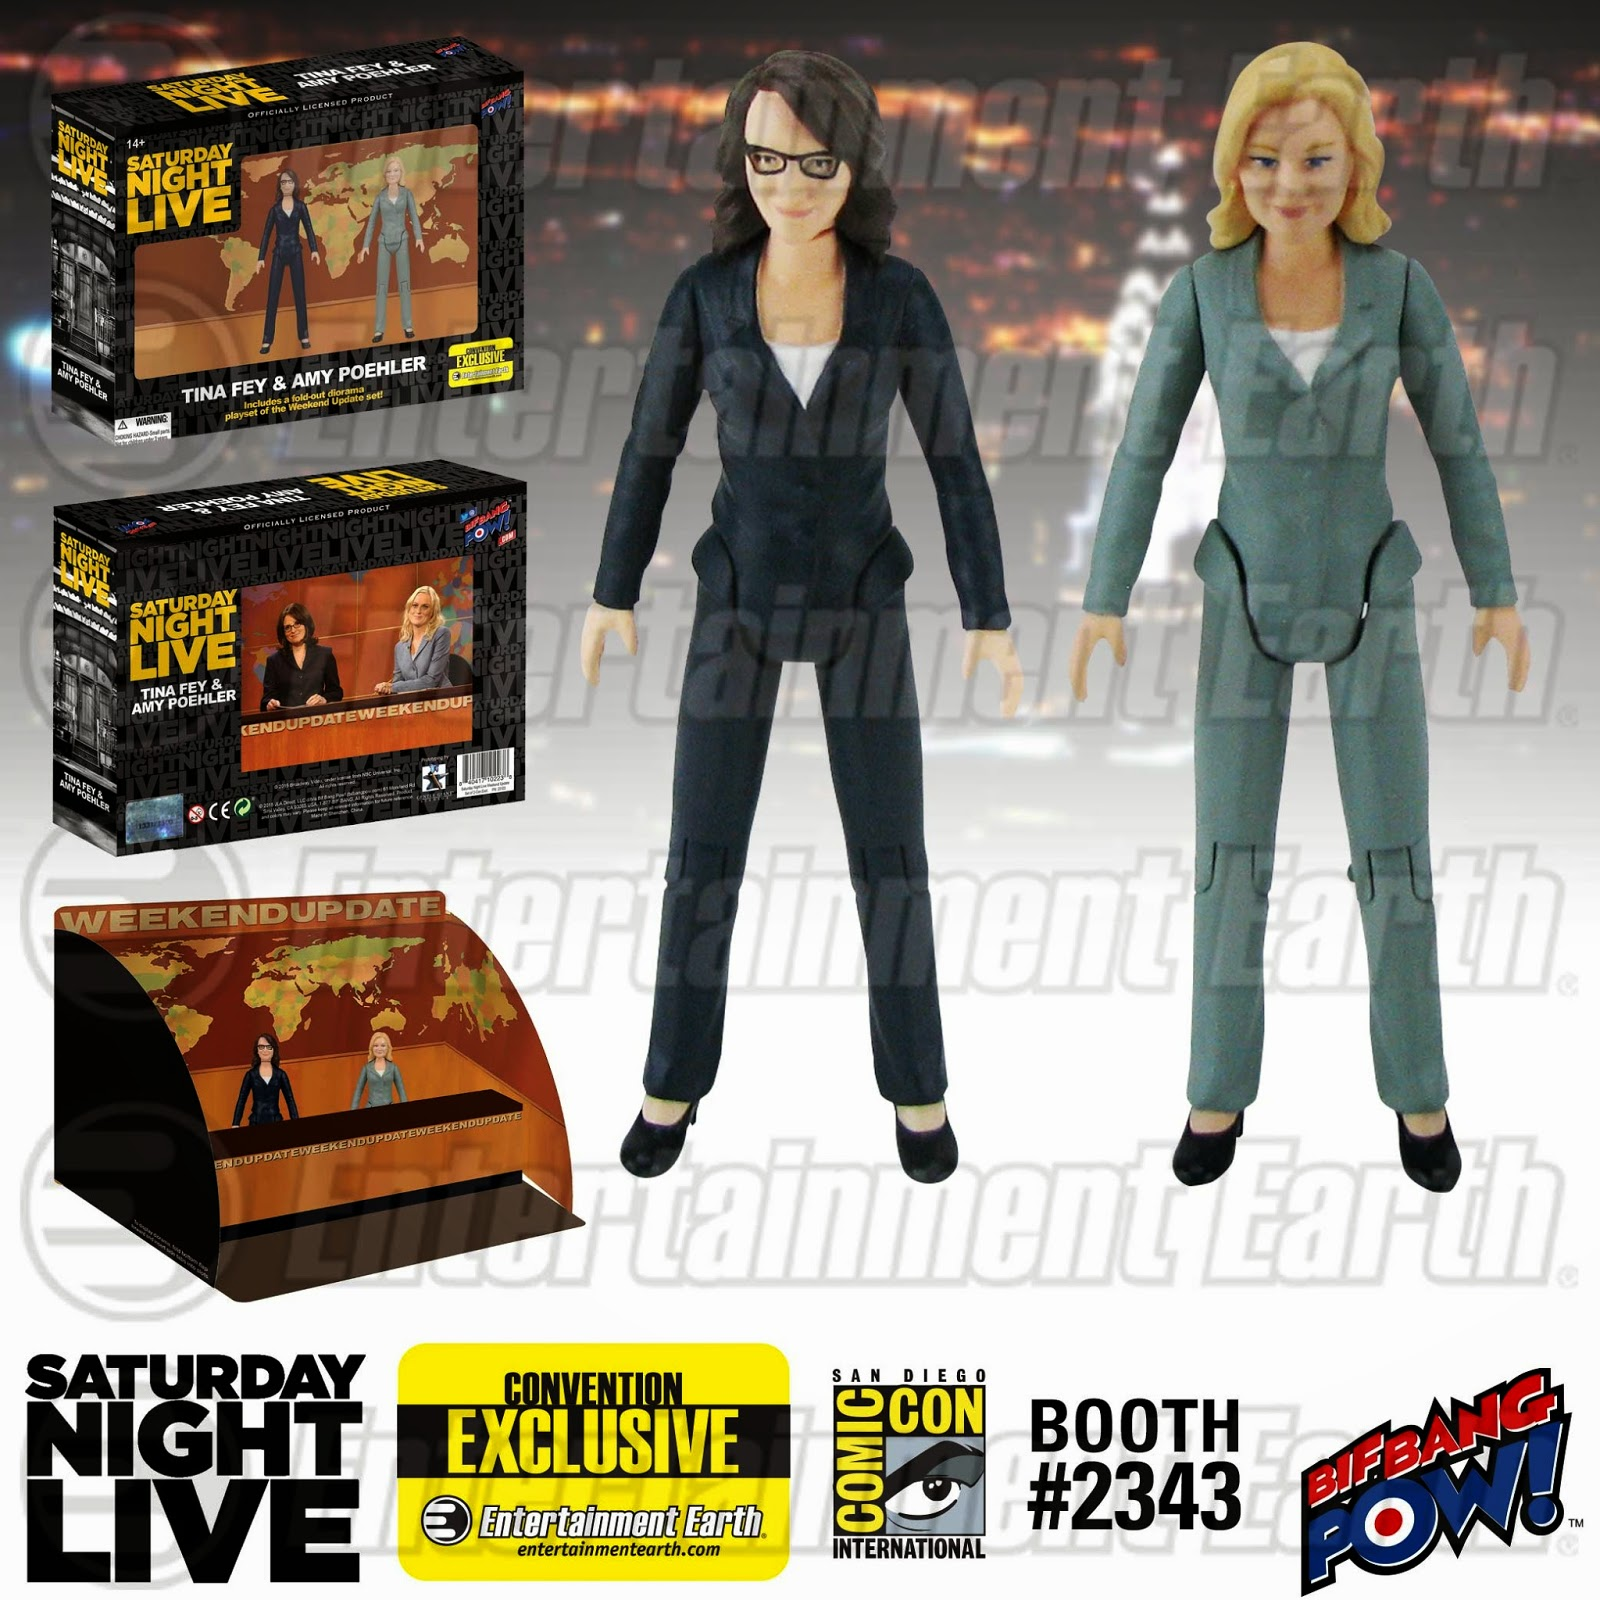 Tina Fey and Amy Poehler Action Figures On Their Way to SDCC